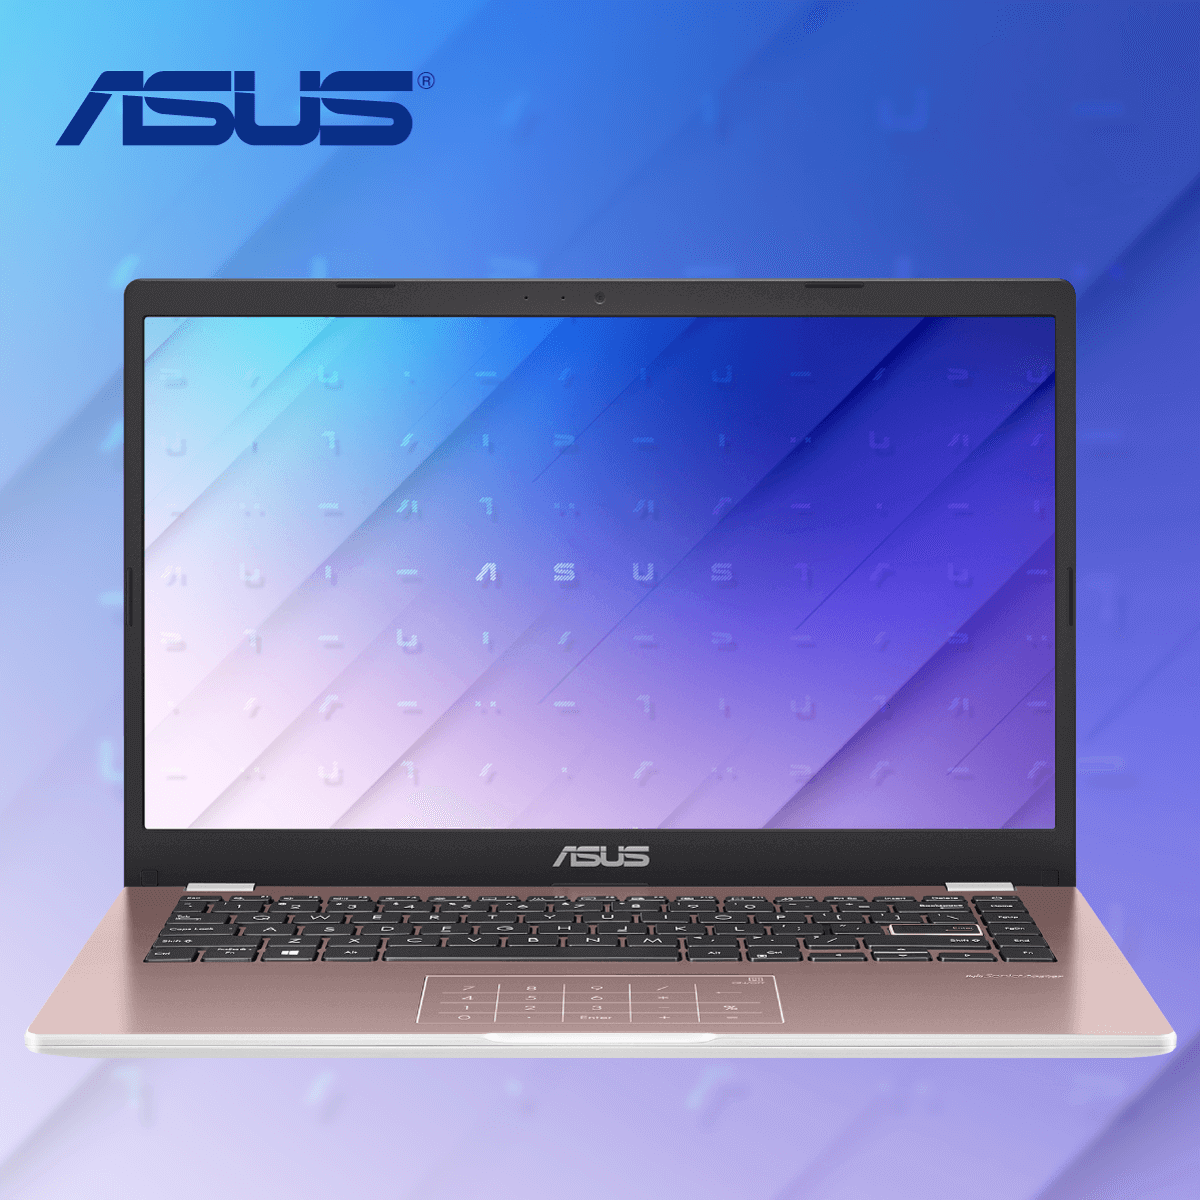 ASUS VivoBook 14 (N4020, Rose Gold)